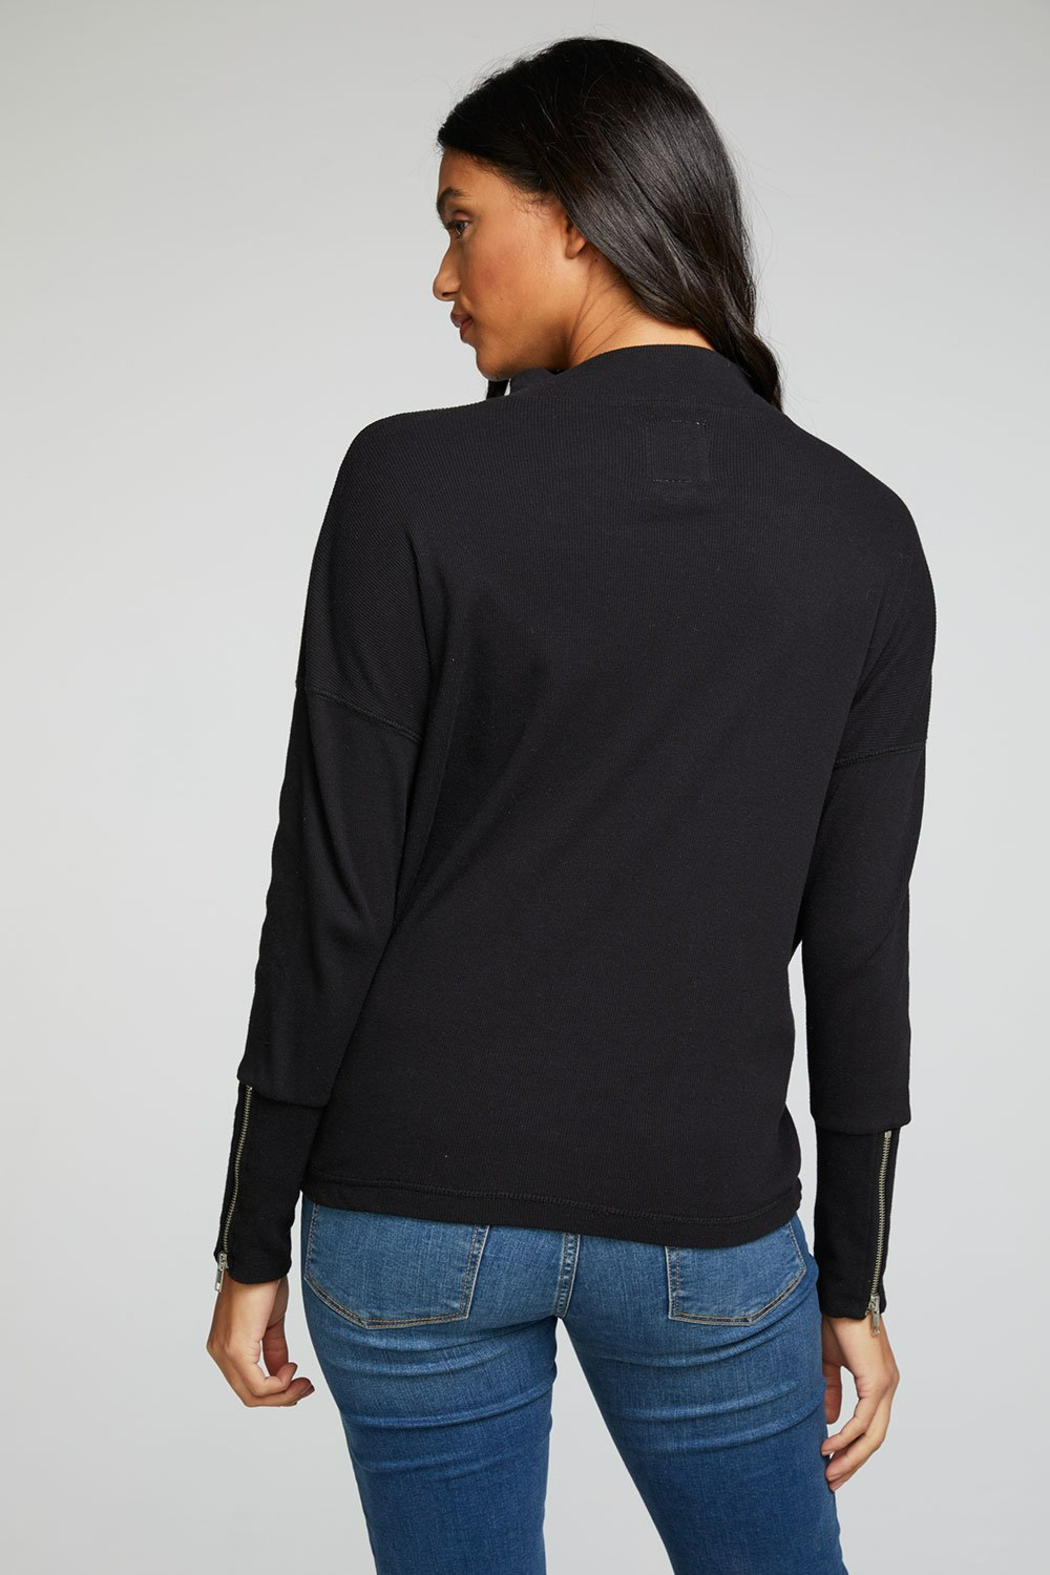 Chaser Ribbed Mock Neck with Zipper Details - Side Cropped Image